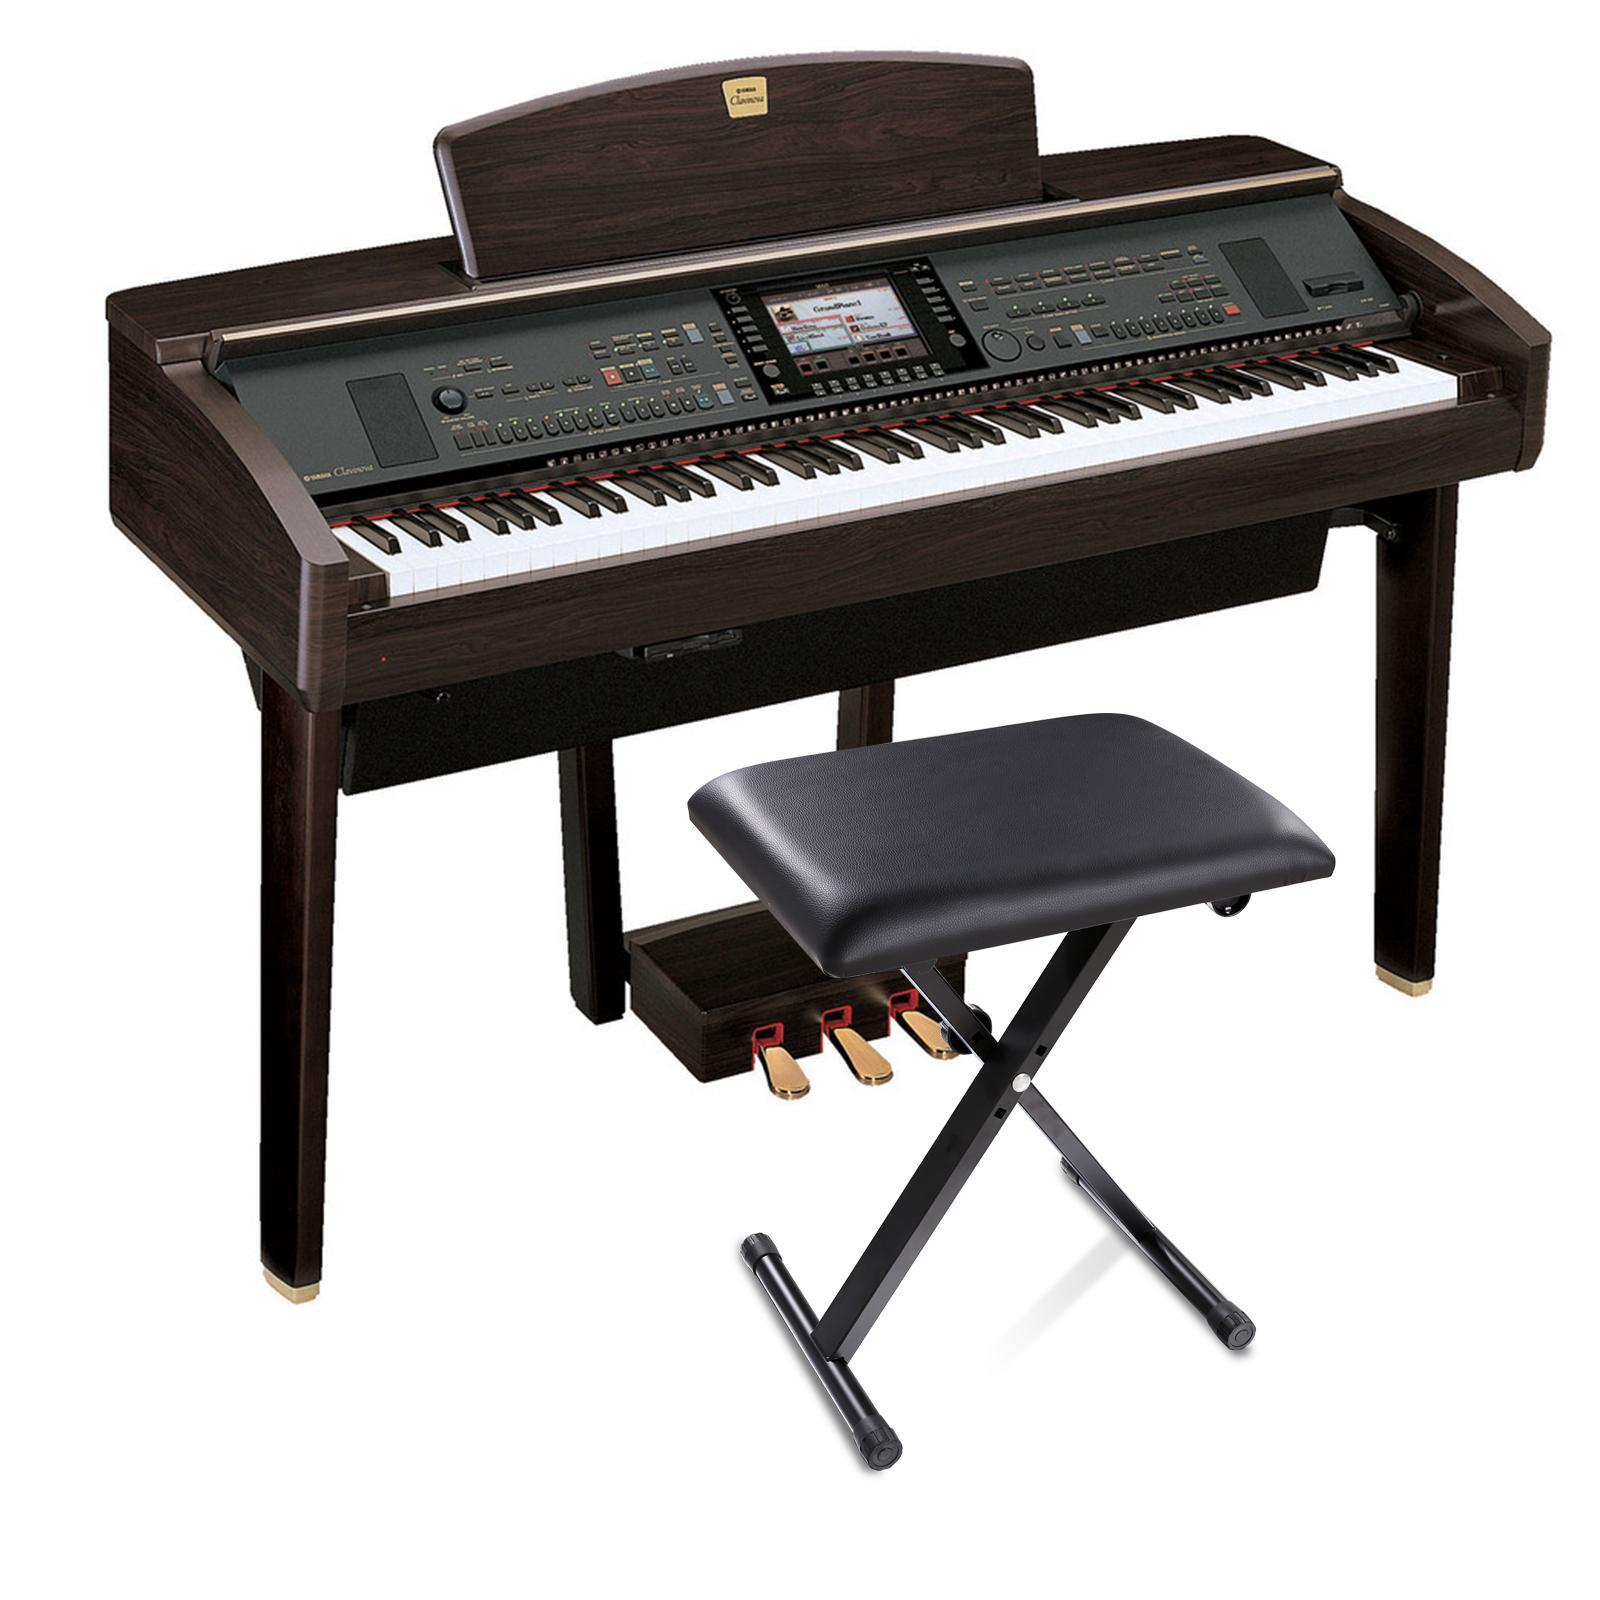 folding chair rubber feet youth desk foldable piano keyboard music x style bench adjustable